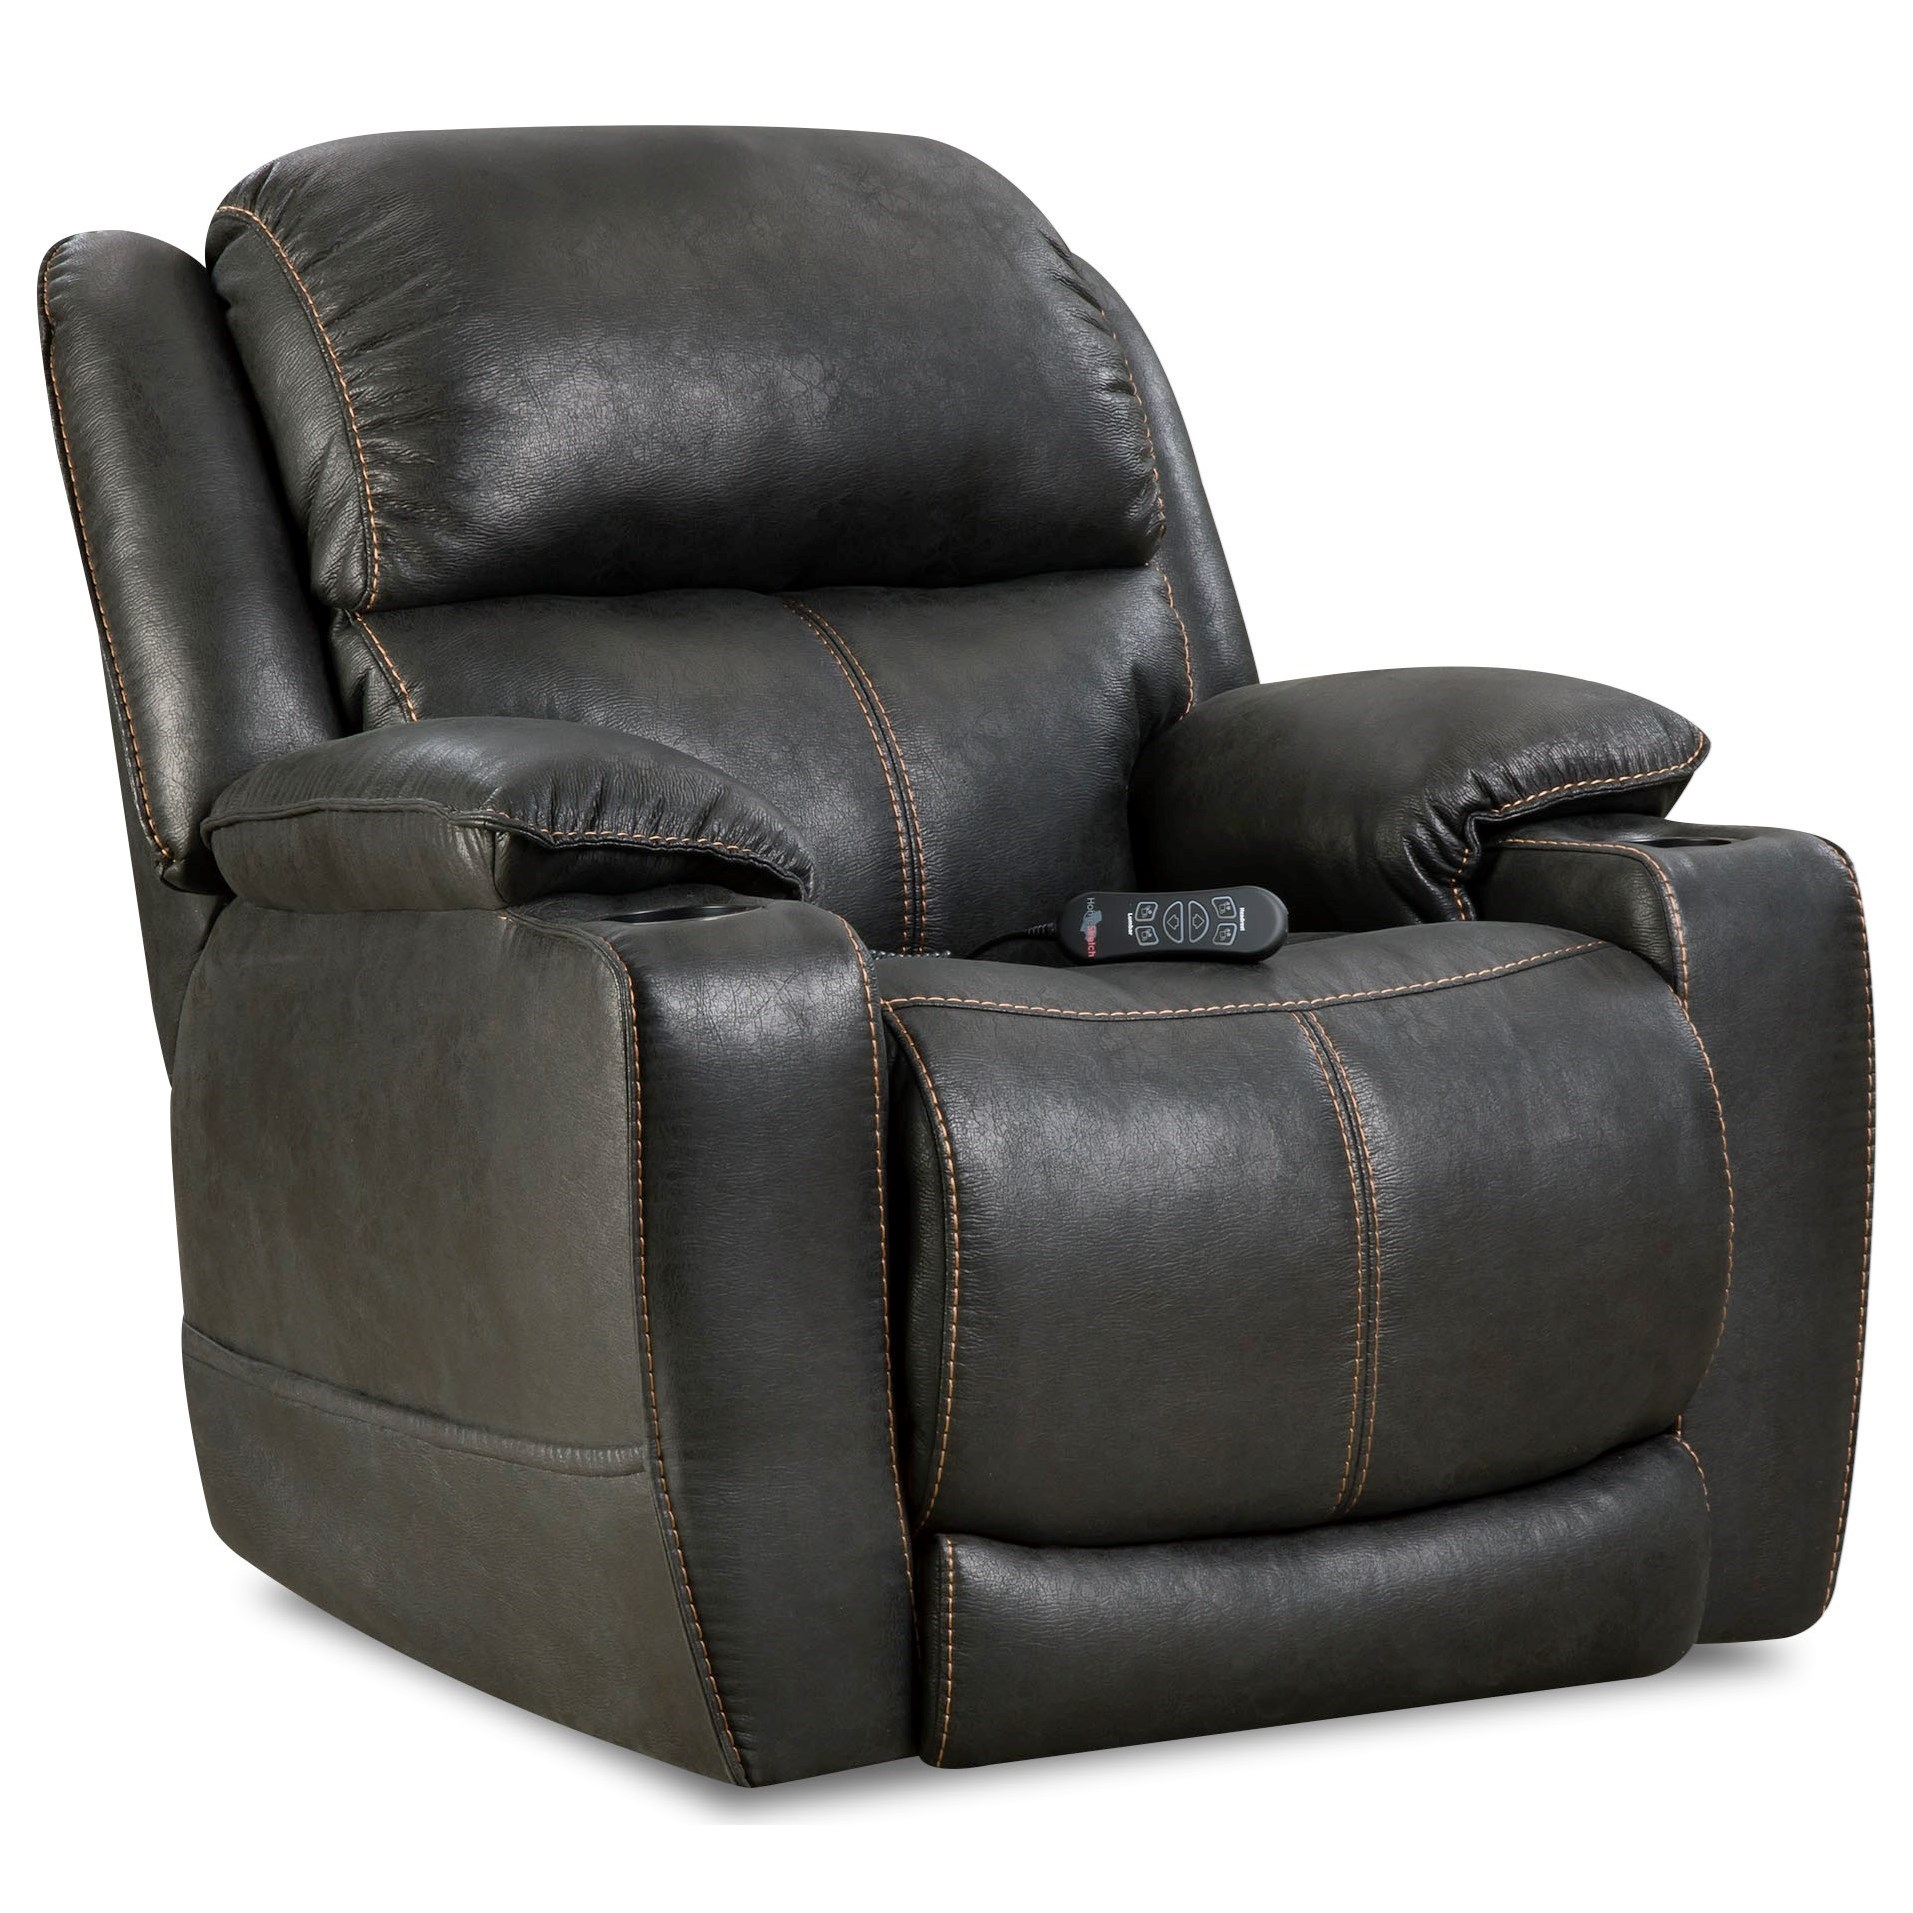 Starship Recliner by HomeStretch at HomeWorld Furniture